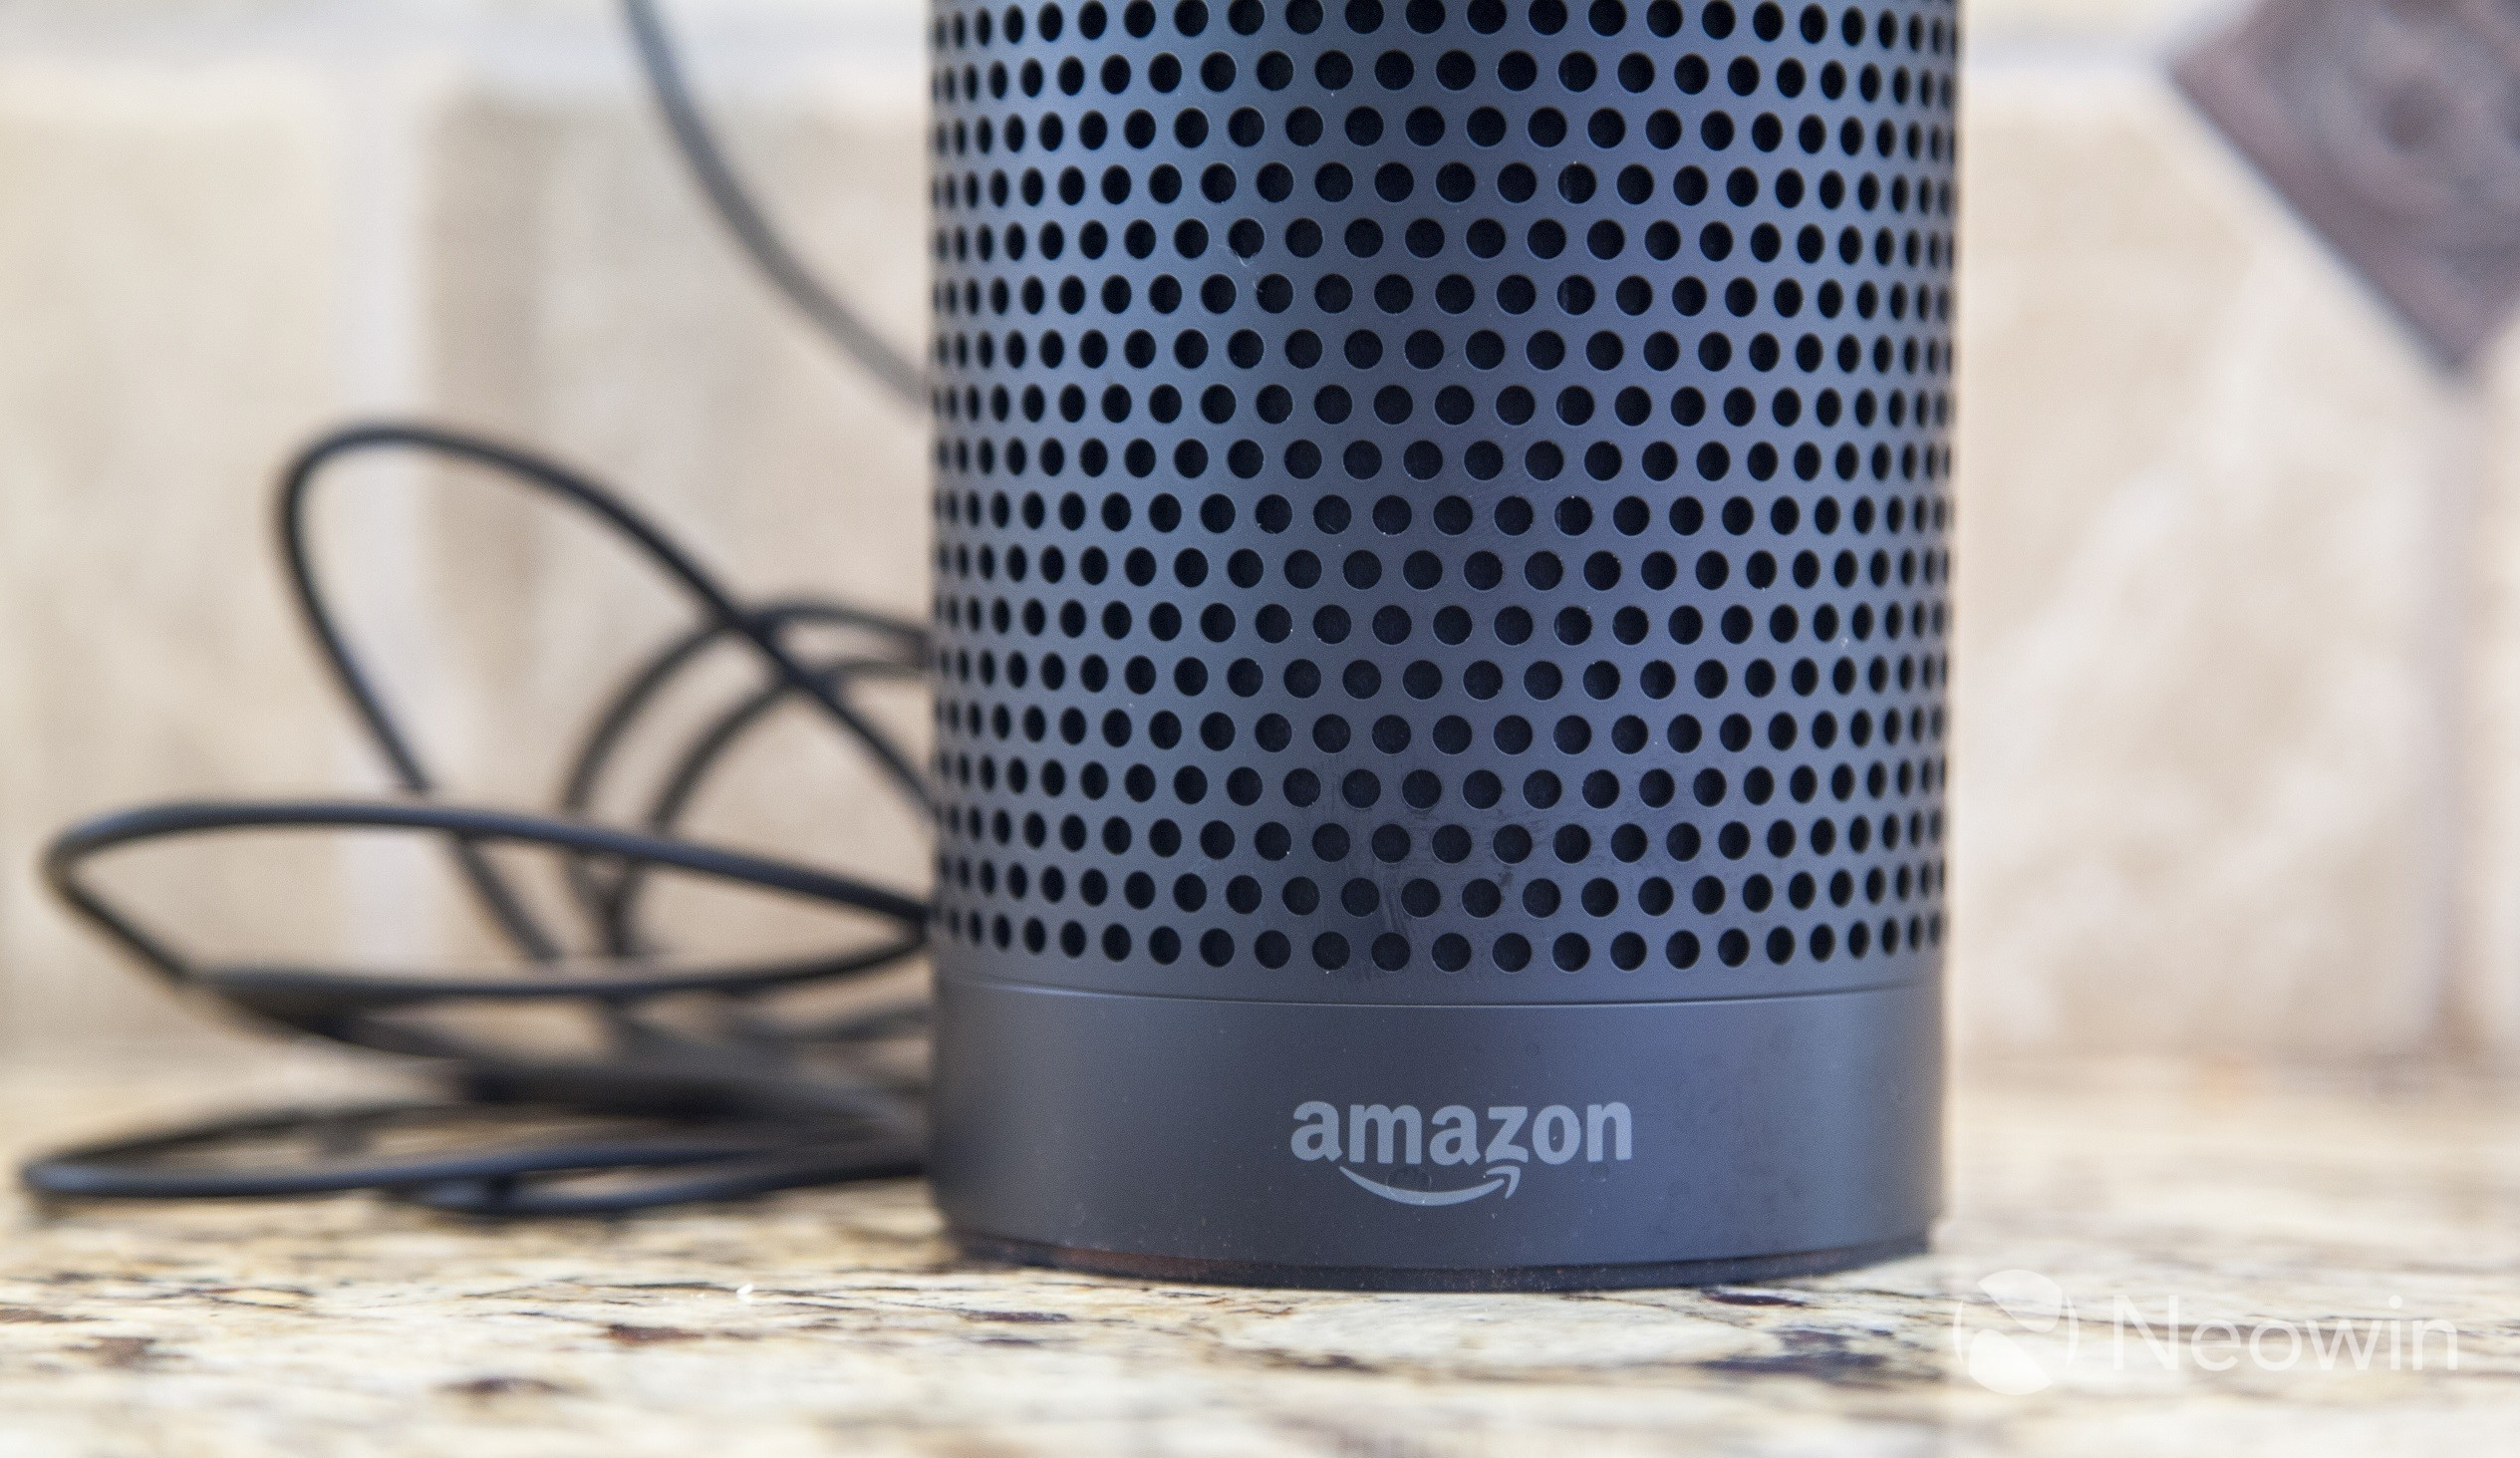 Amazon plans to release at least 8 new Alexa devices, including a microwave oven and in-car gadget